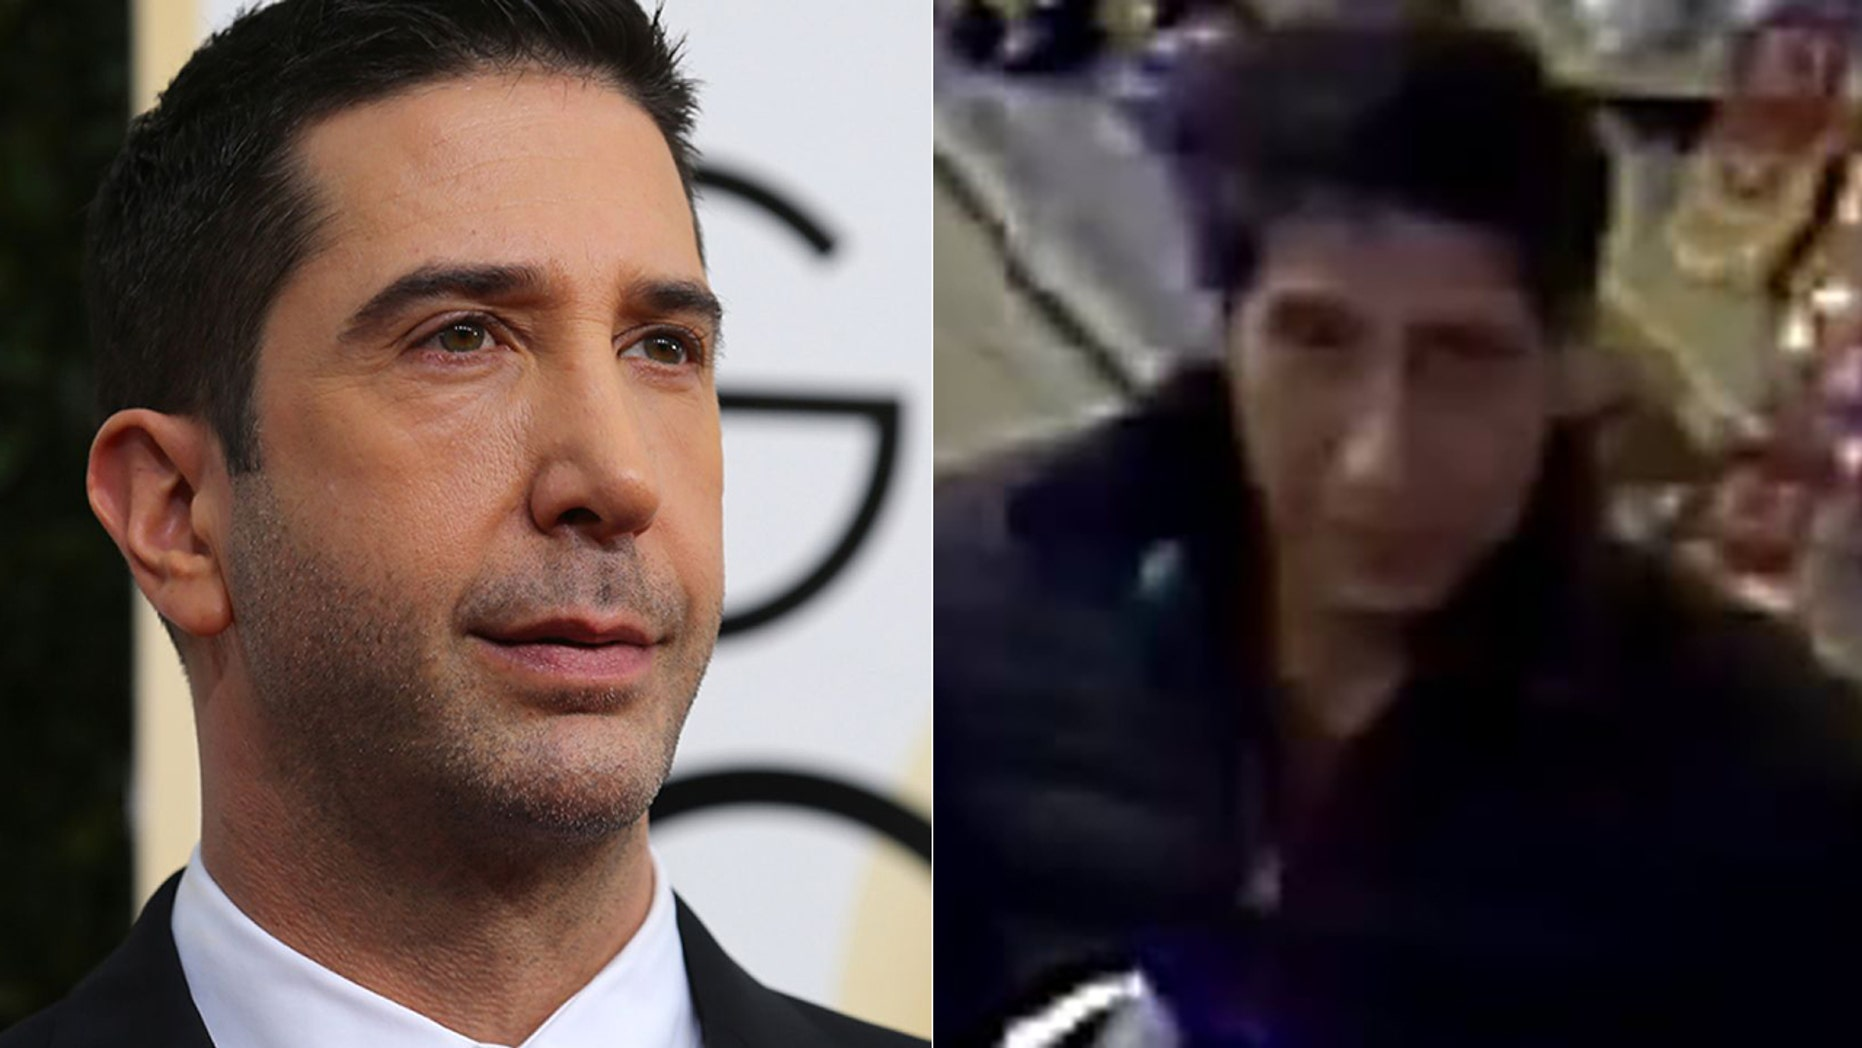 Police in England confirmed that David Schwimmer, on the left, was in the US at the time of theft and is not the suspect on the right.